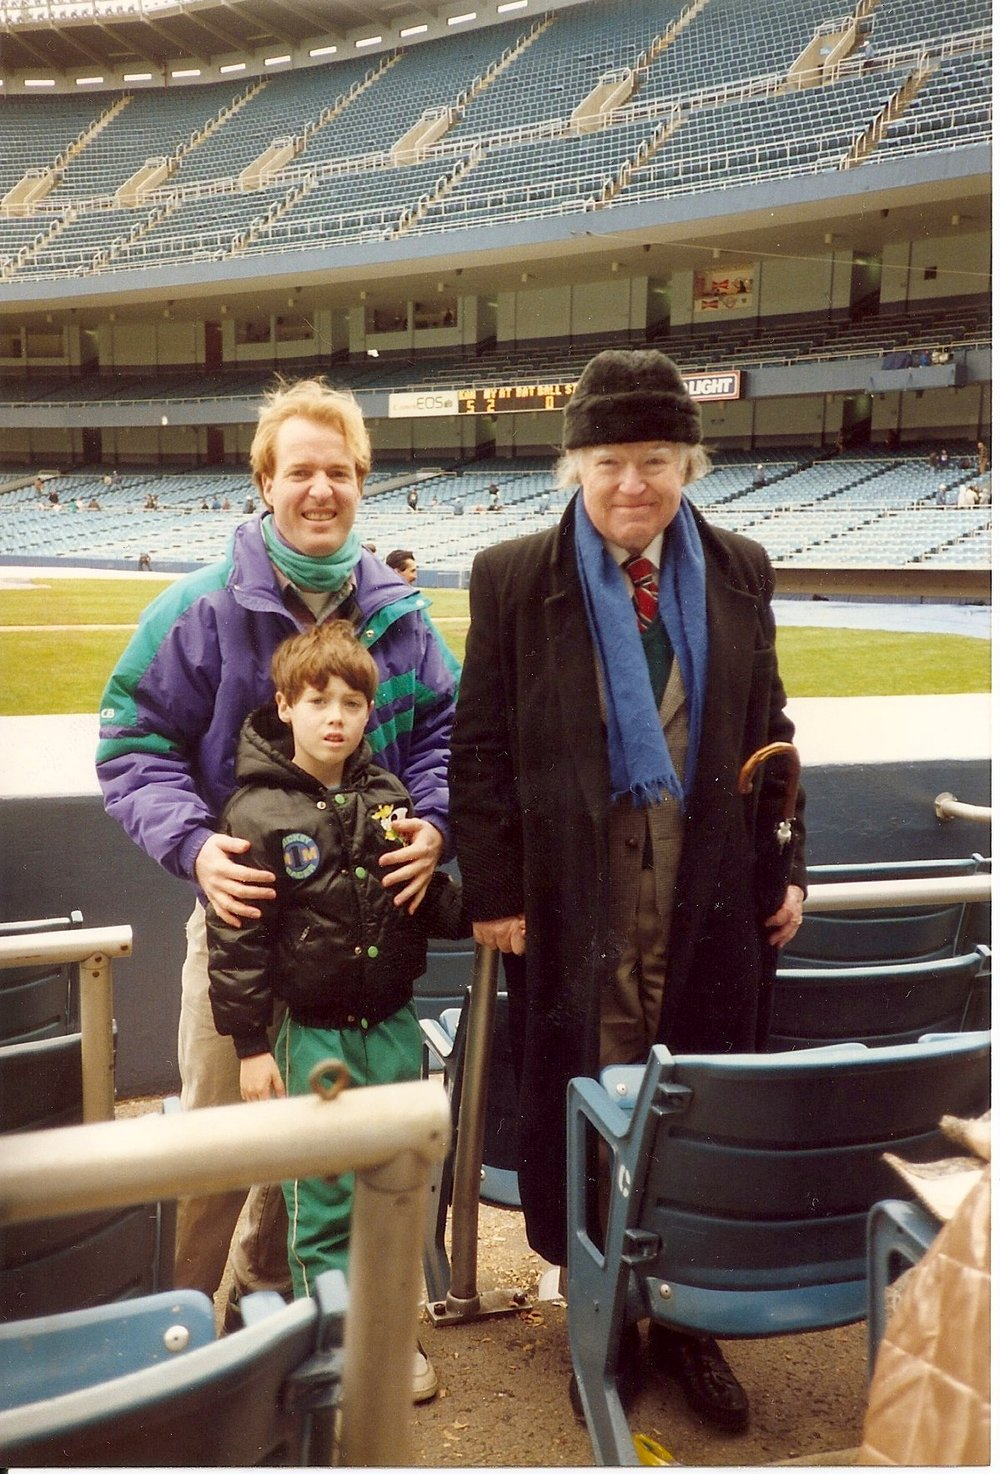 A young Douglas with his father and son at Yankee Stadium